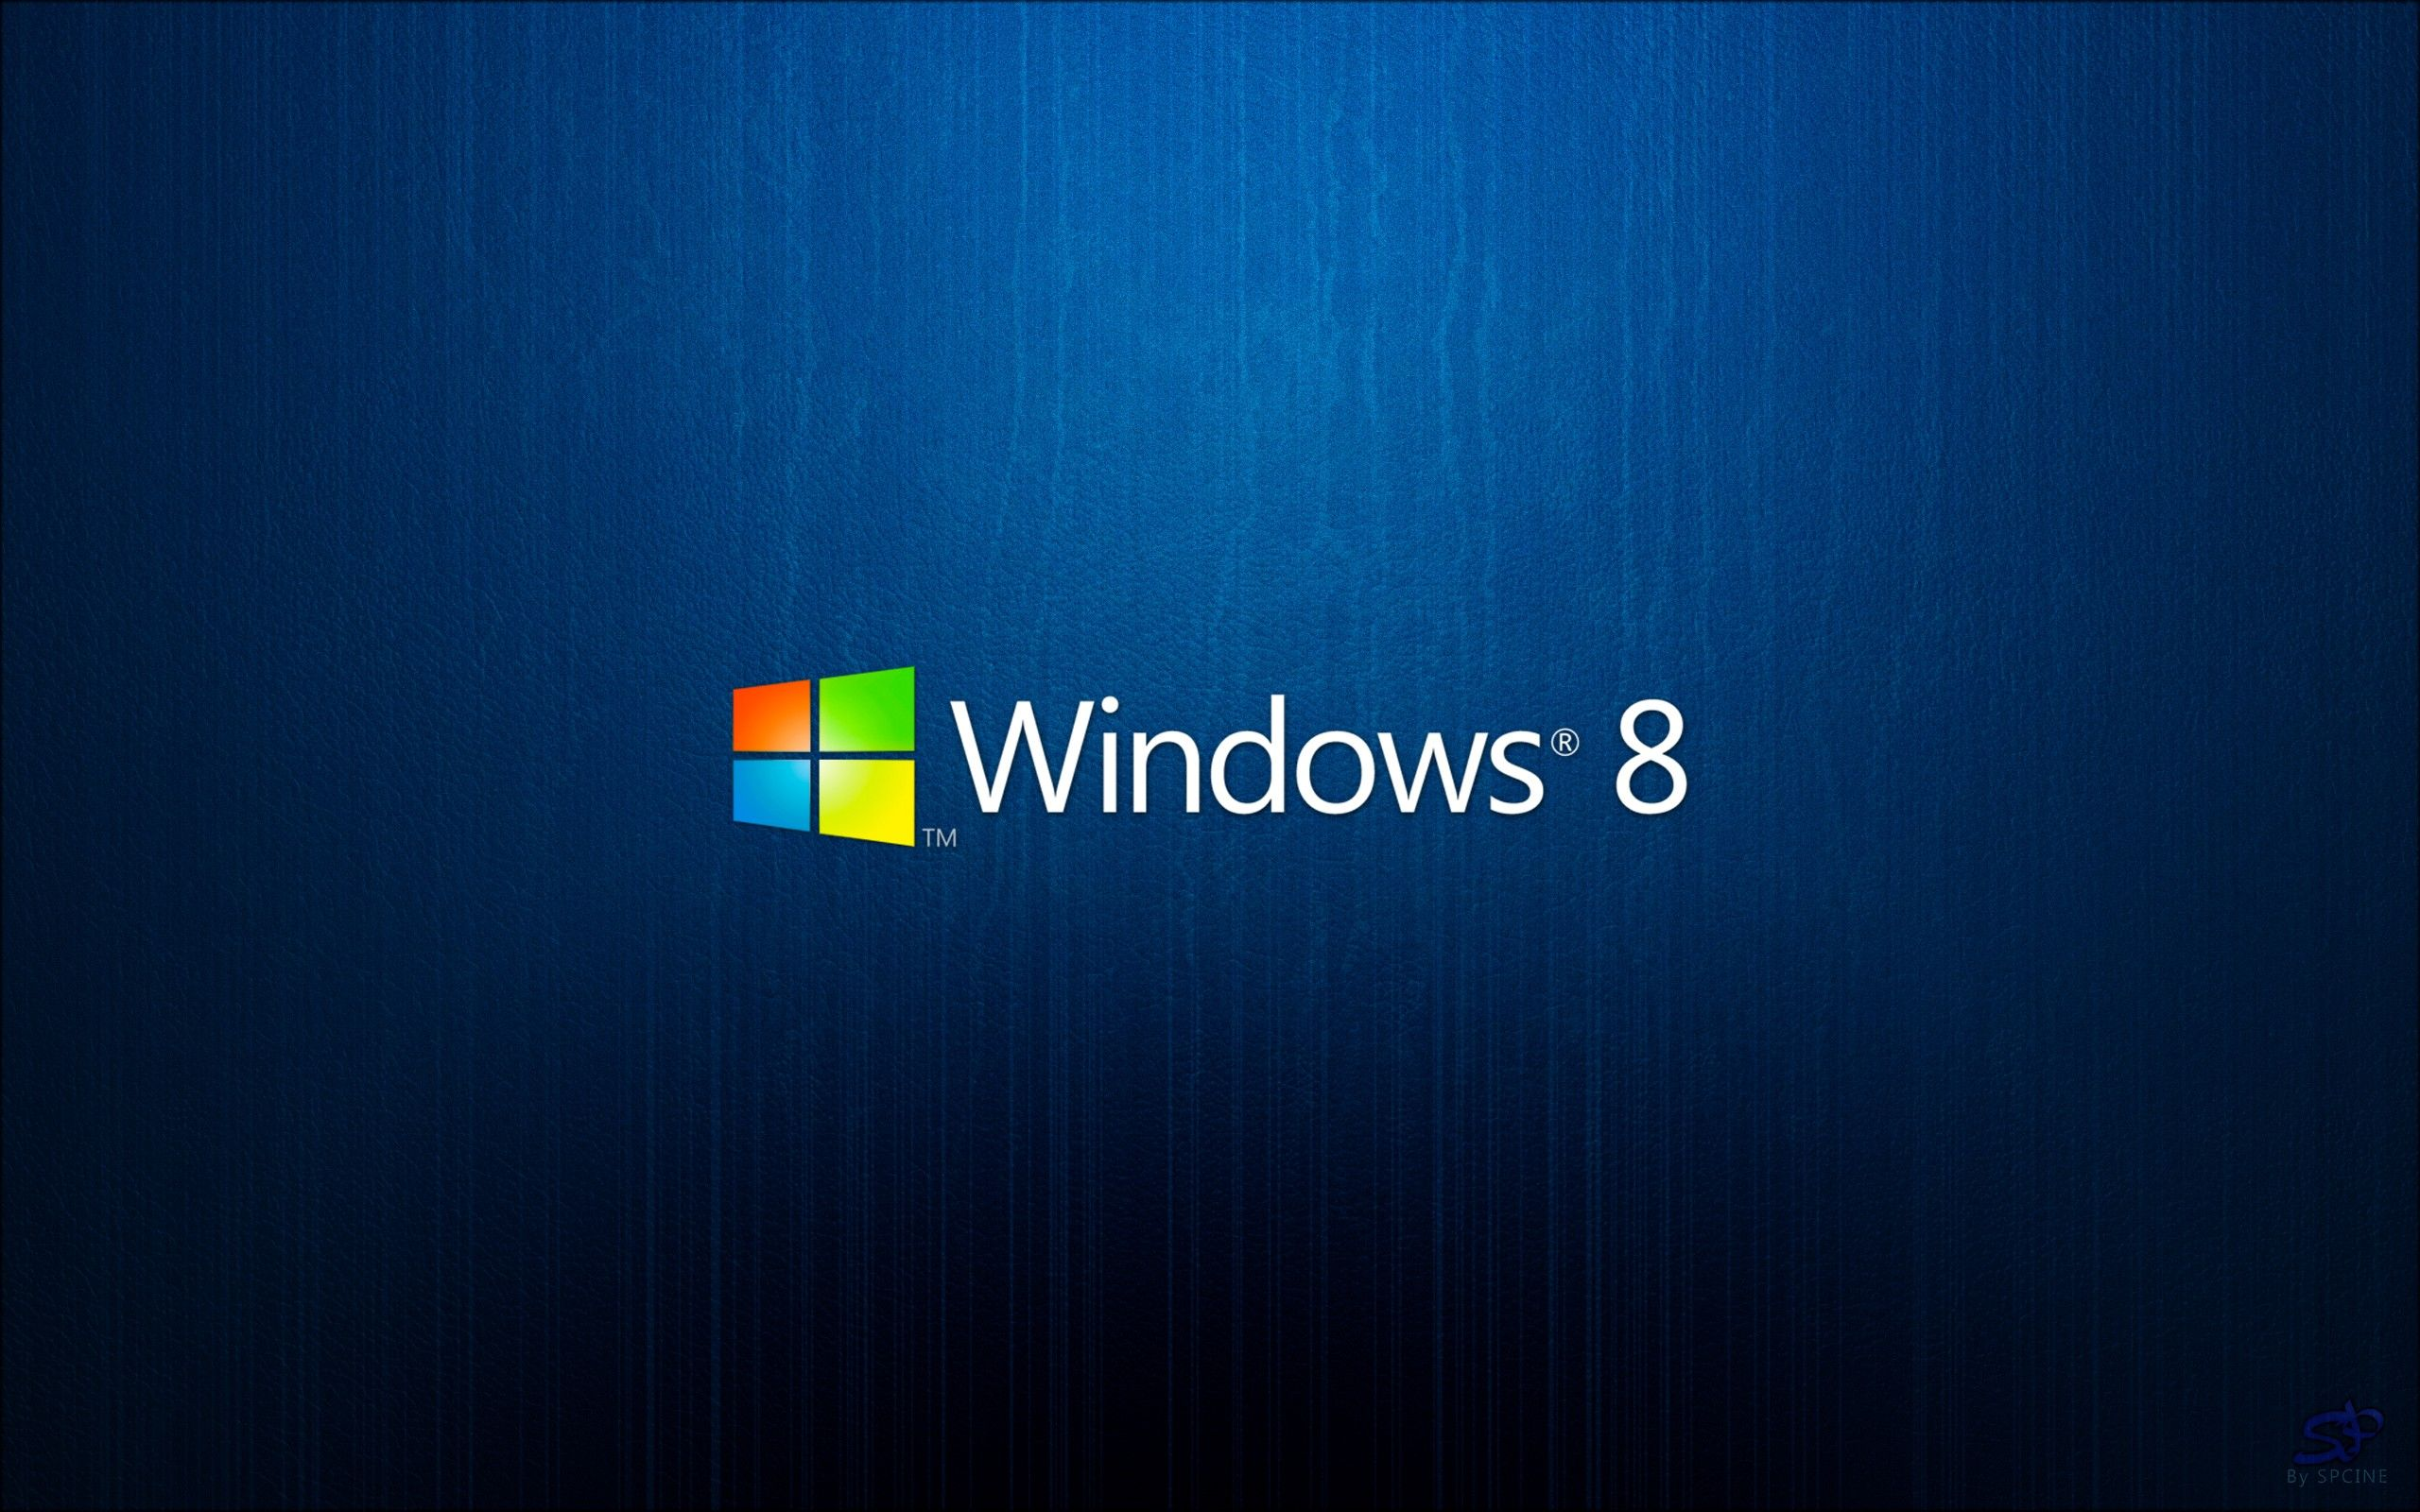 Download Install Windows 8 In 2020 Computer Wallpaper Hd Wallpaper Pc 4k Wallpapers For Pc